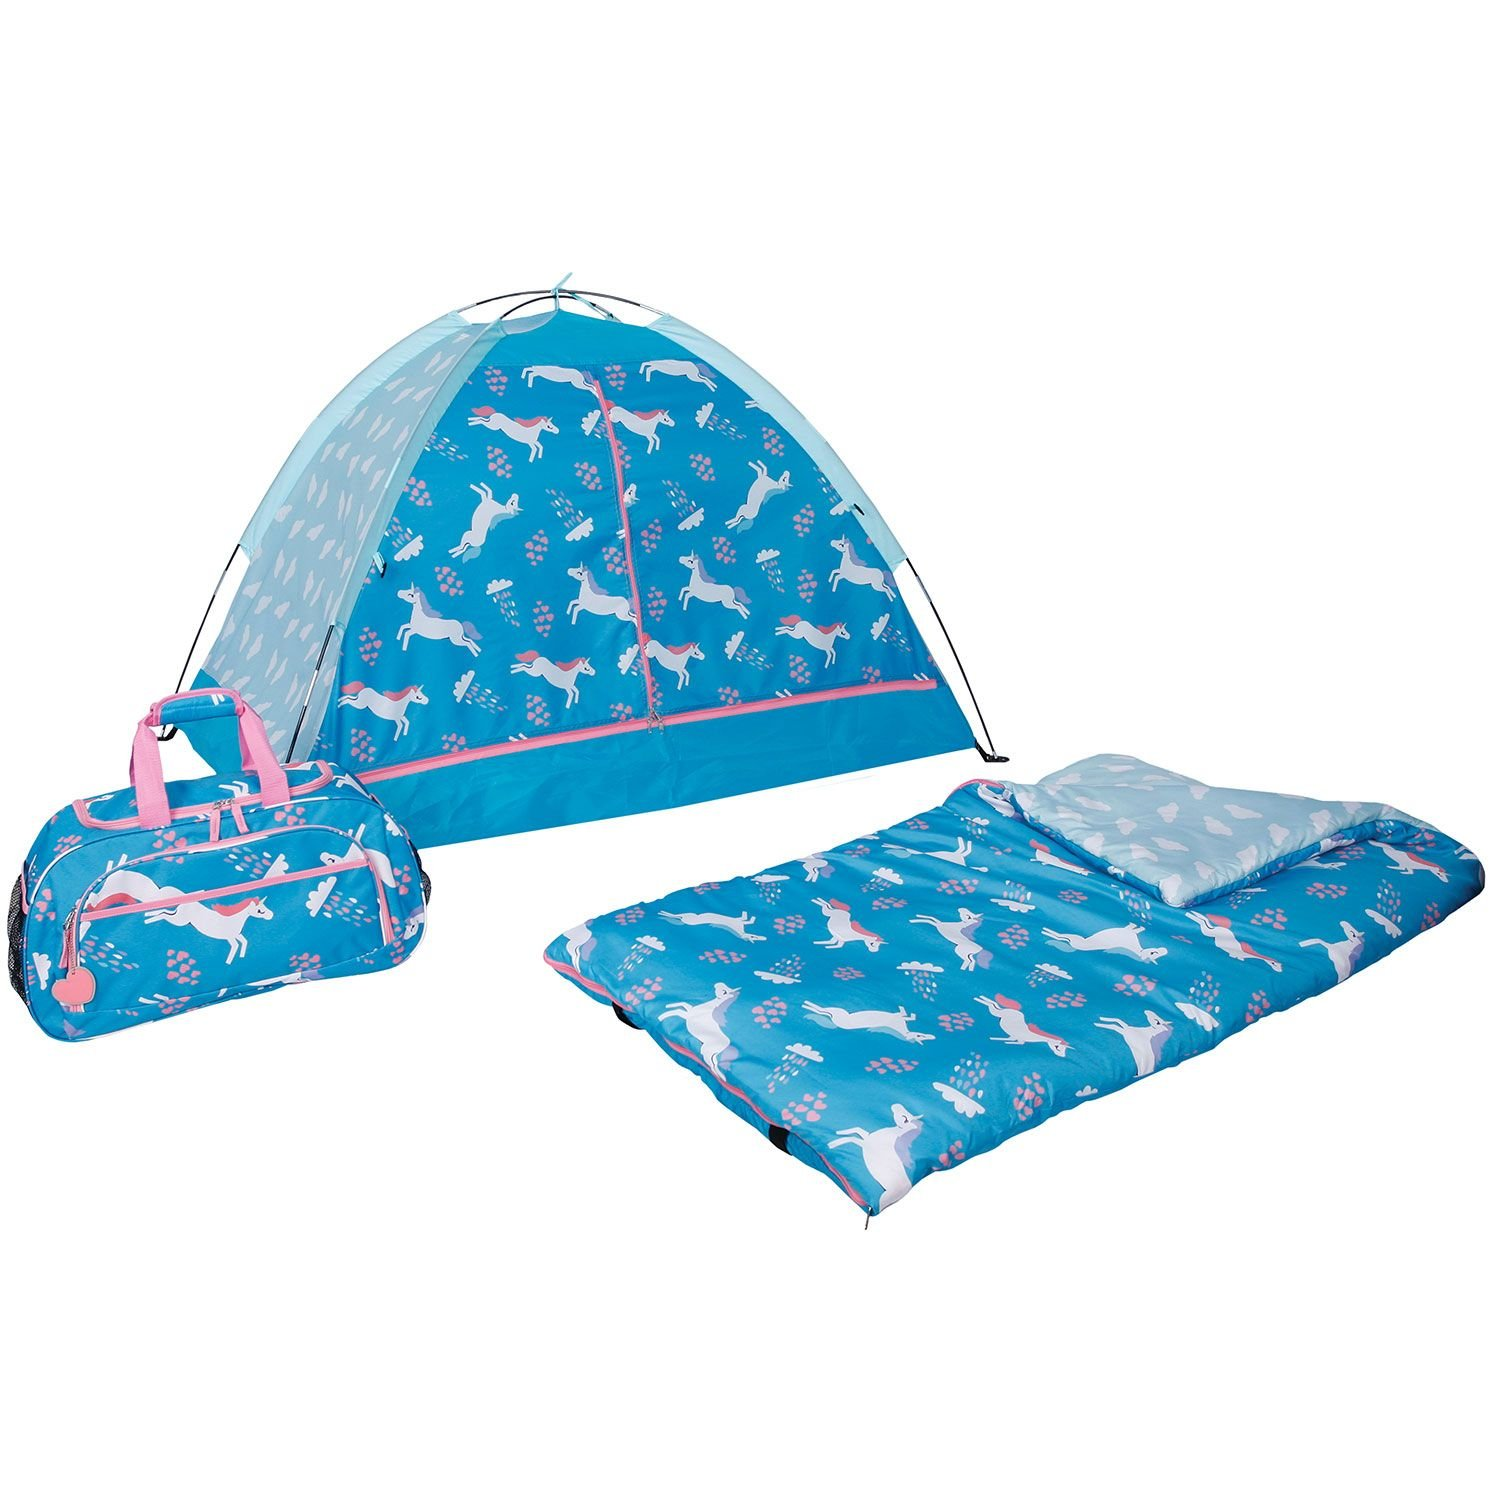 3-Piece Kids Indoor Camping Slumber Set (Leaping Unicorn) DOODLES SLEEP SET